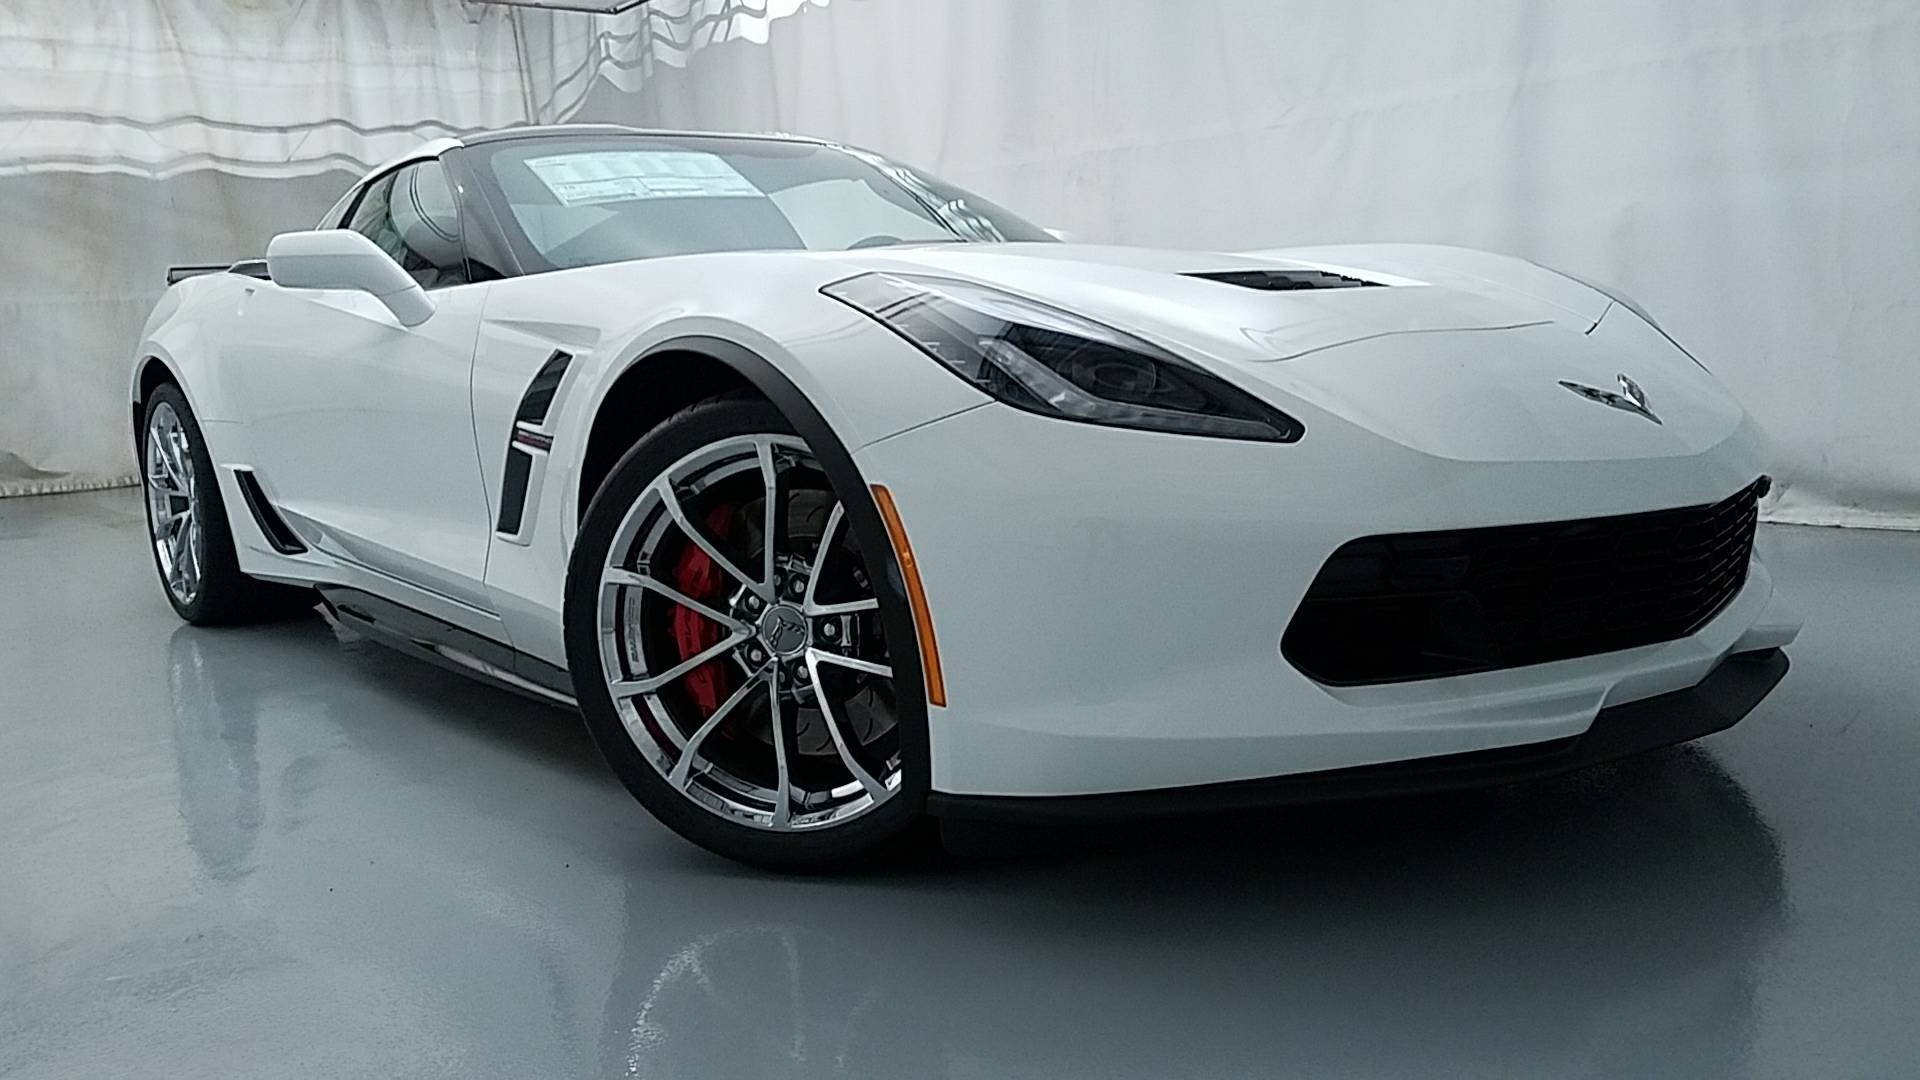 New 2019 Artic White Grand Sport $-7,000 Off @ ROSS DOWNING